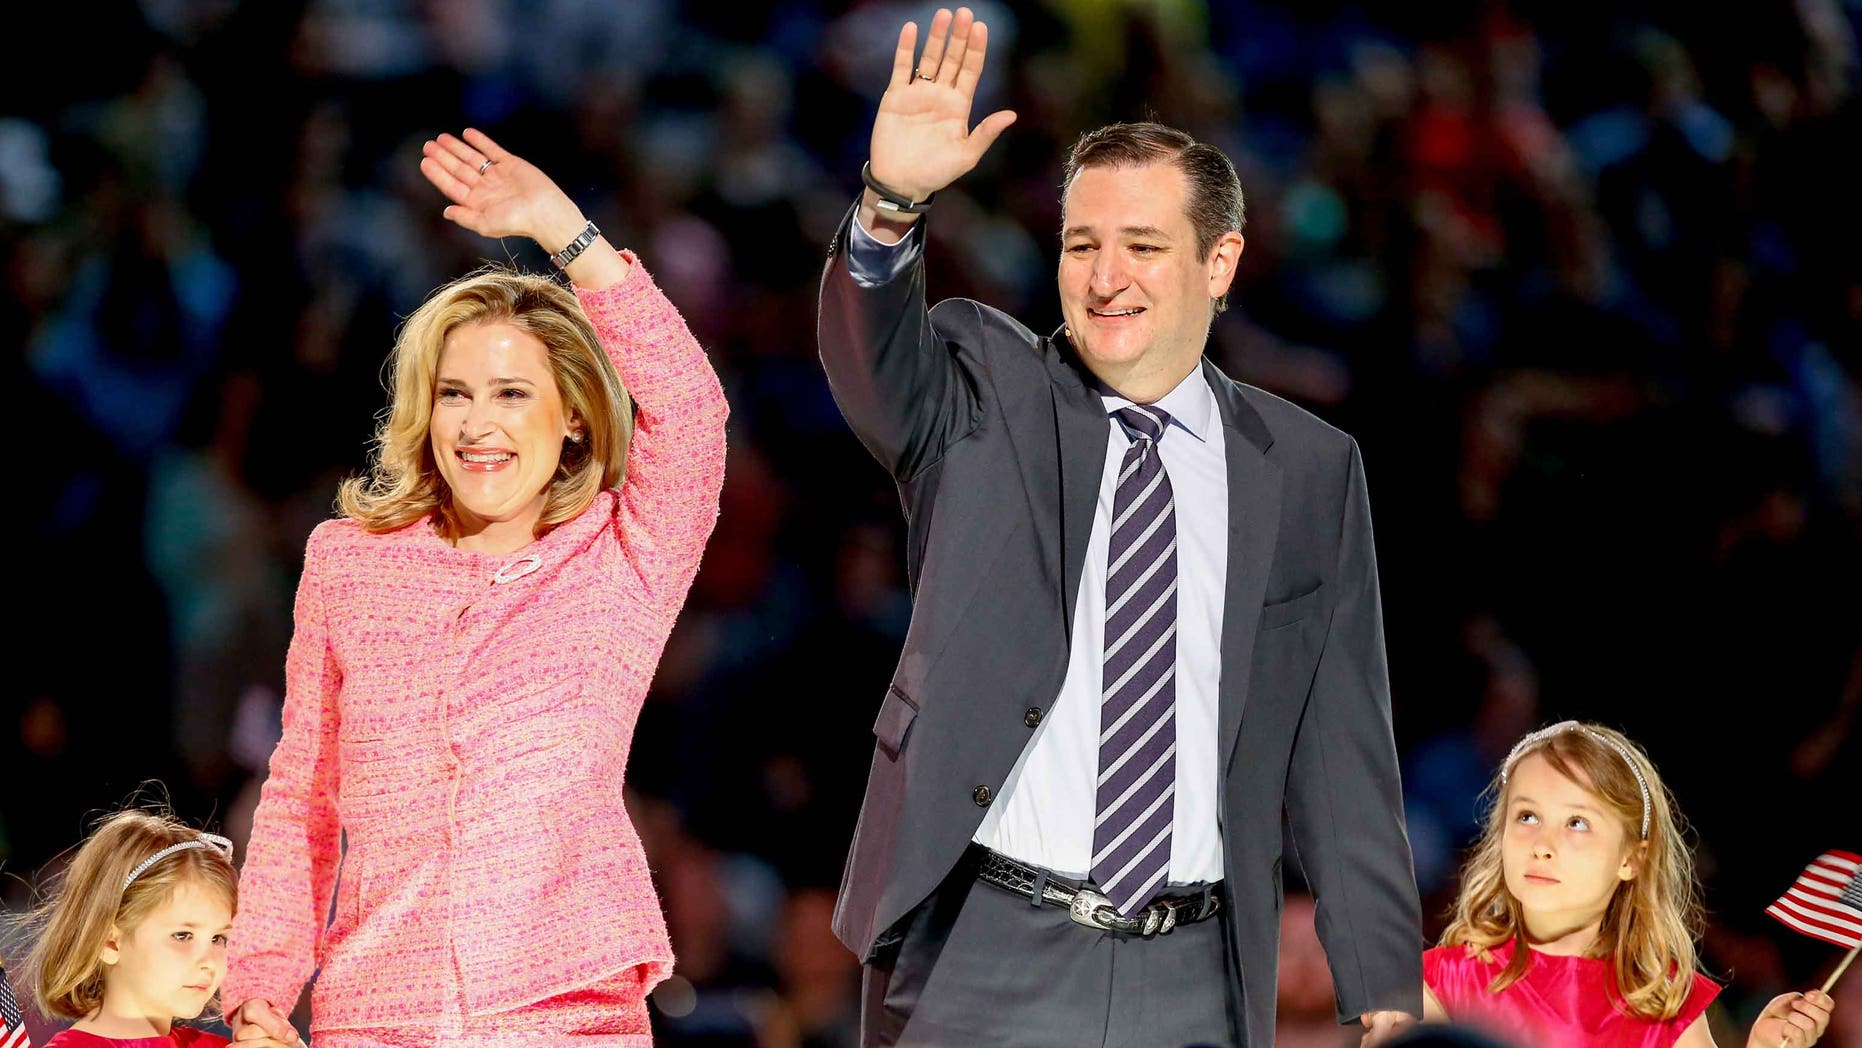 Sen. Ted Cruz, his wife and their two daughters on March 23, 2015, at Liberty University in Lynchburg, Va.